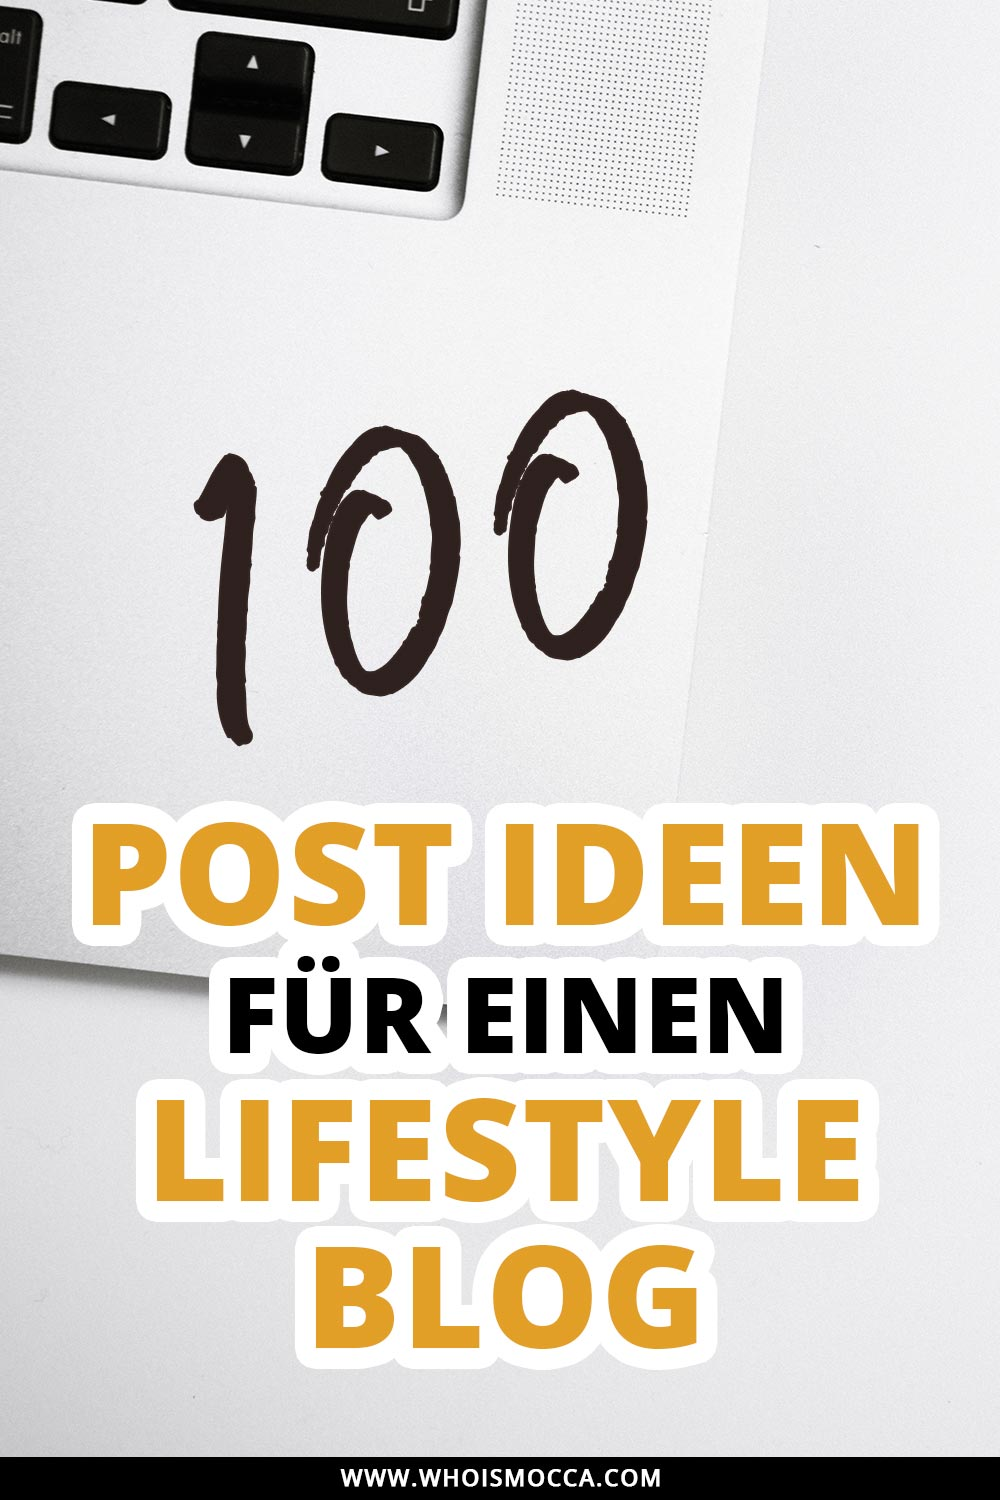 100 Post Ideen für einen Lifestyle Blog, Blogger Tipps und Tricks, Blogger Inspiration für Posts, Blogger Tutorials, www.whoismocca.com